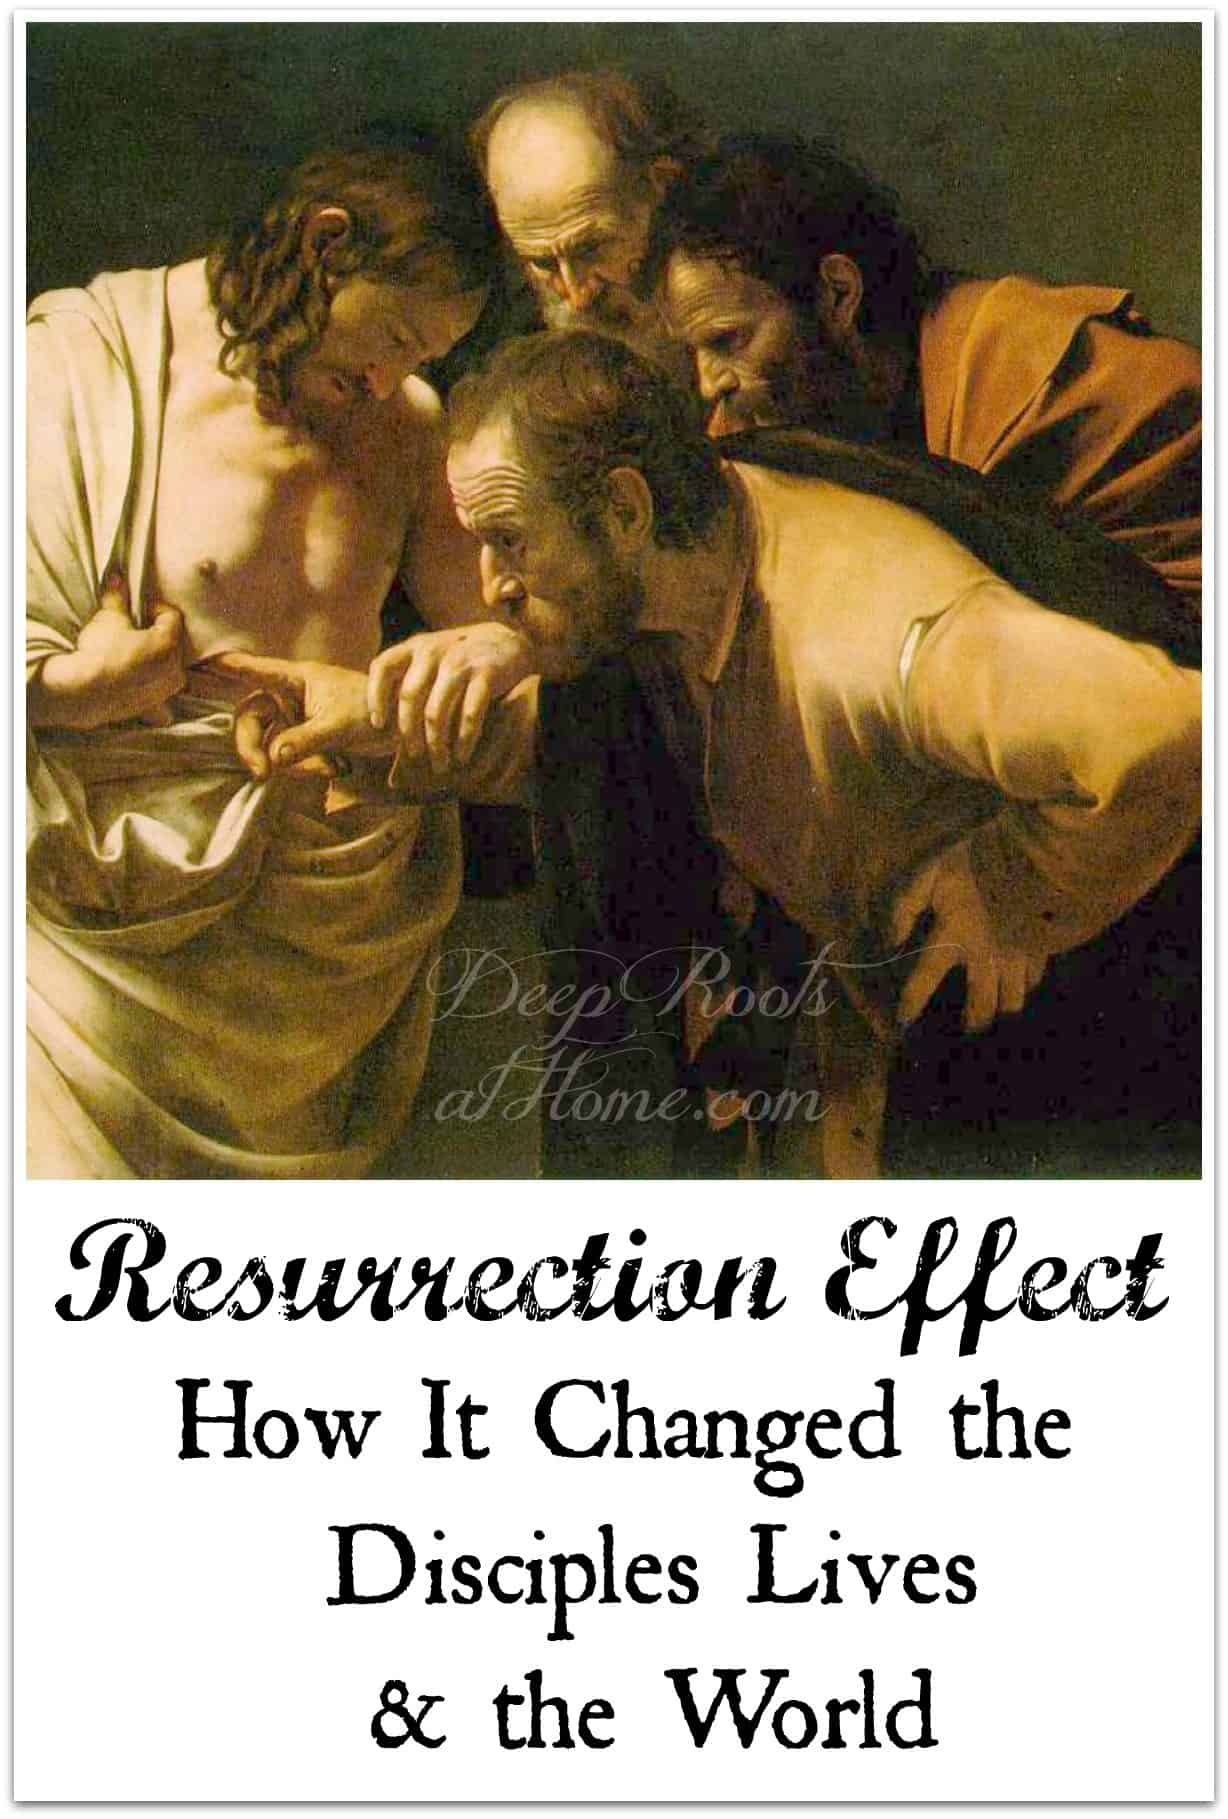 Resurrection Effect: How It Changed the Disciple's Lives & the World. The disciples and Jesus's wounded side